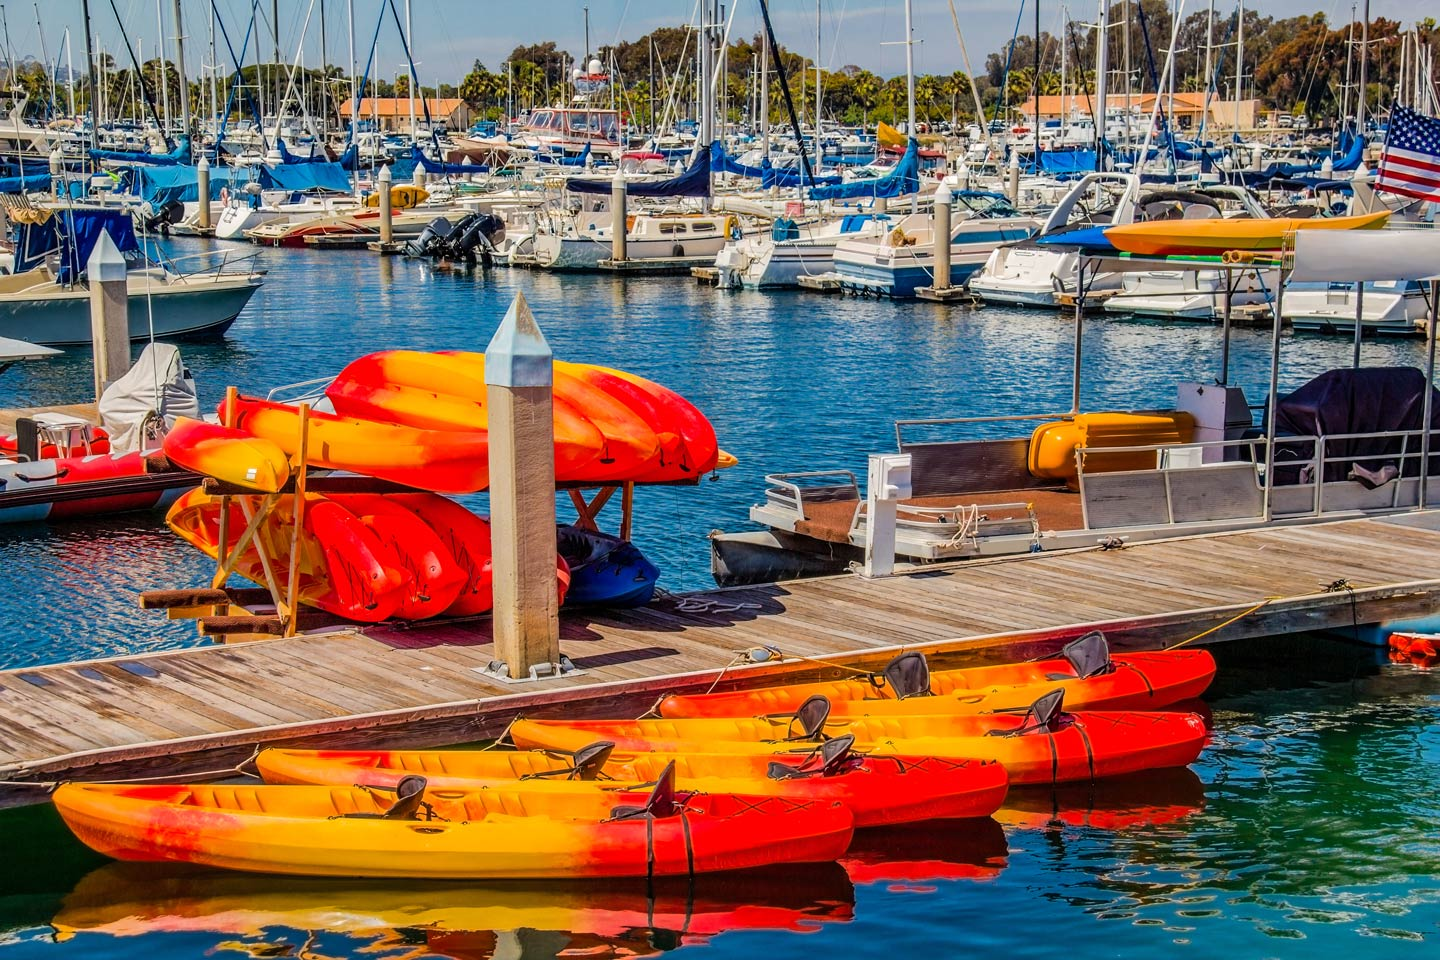 Rental kayaks tethered at Oceanside Harbor.